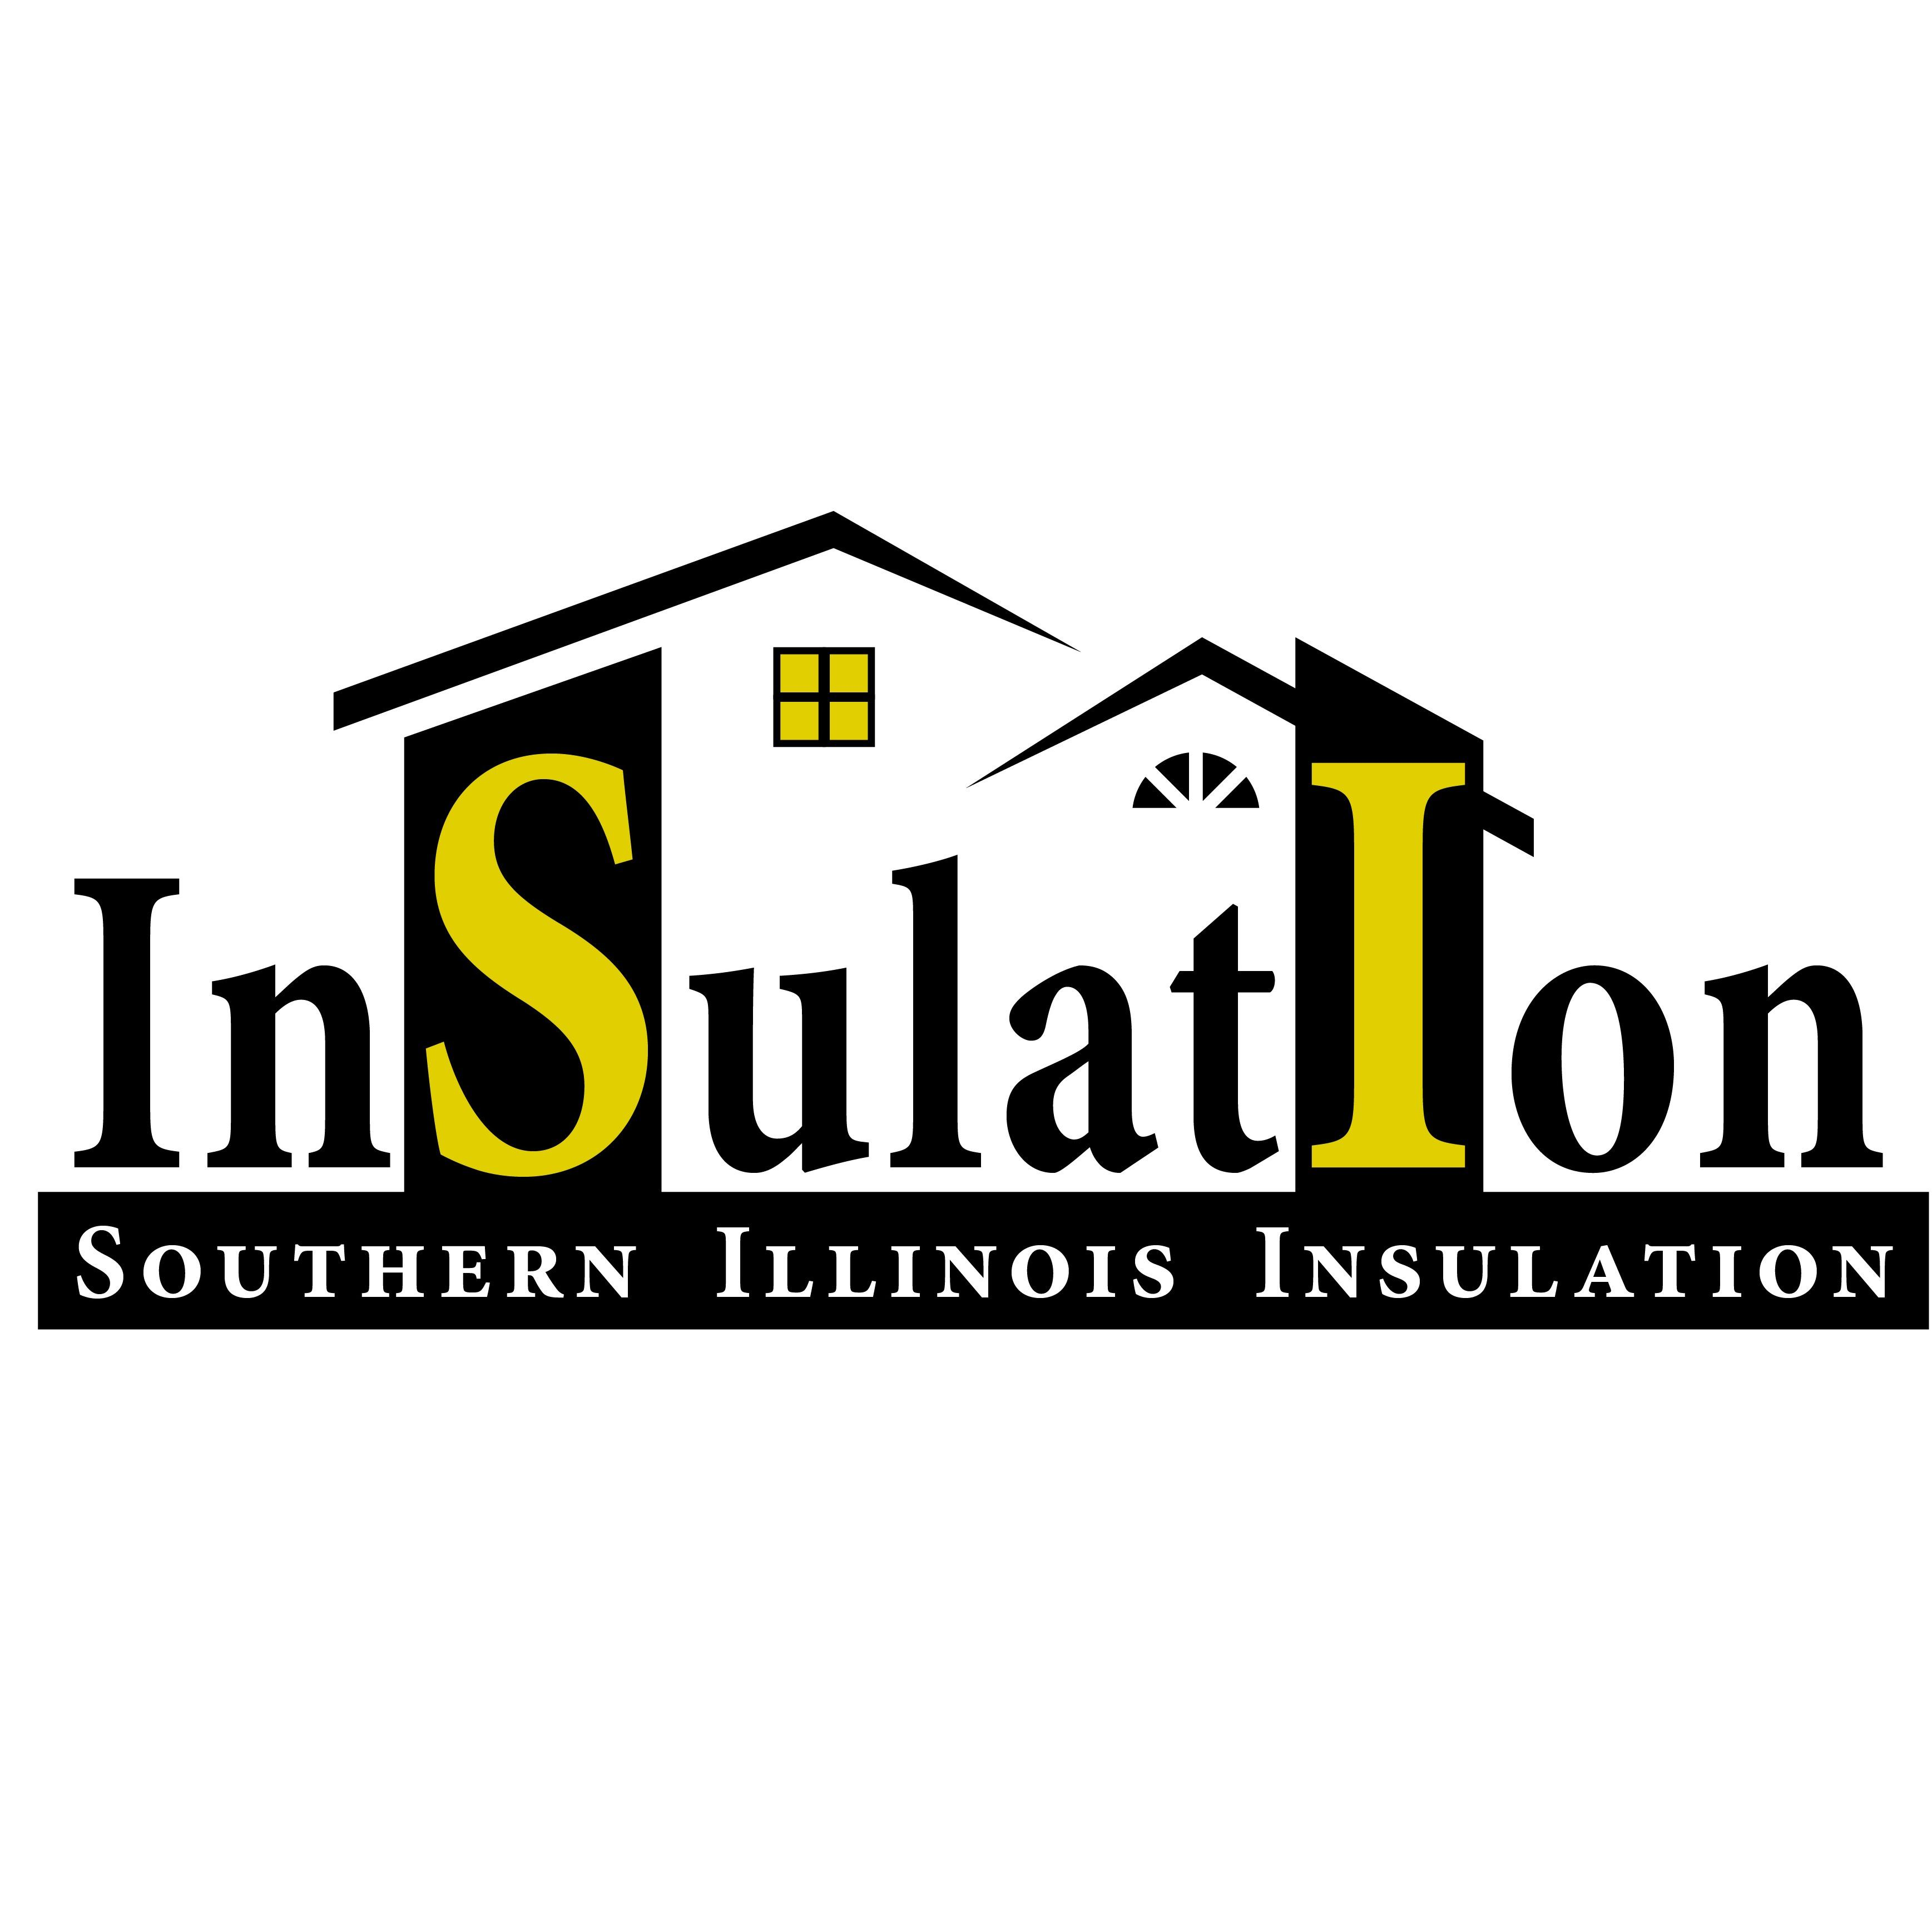 image of the southern illinois insulation